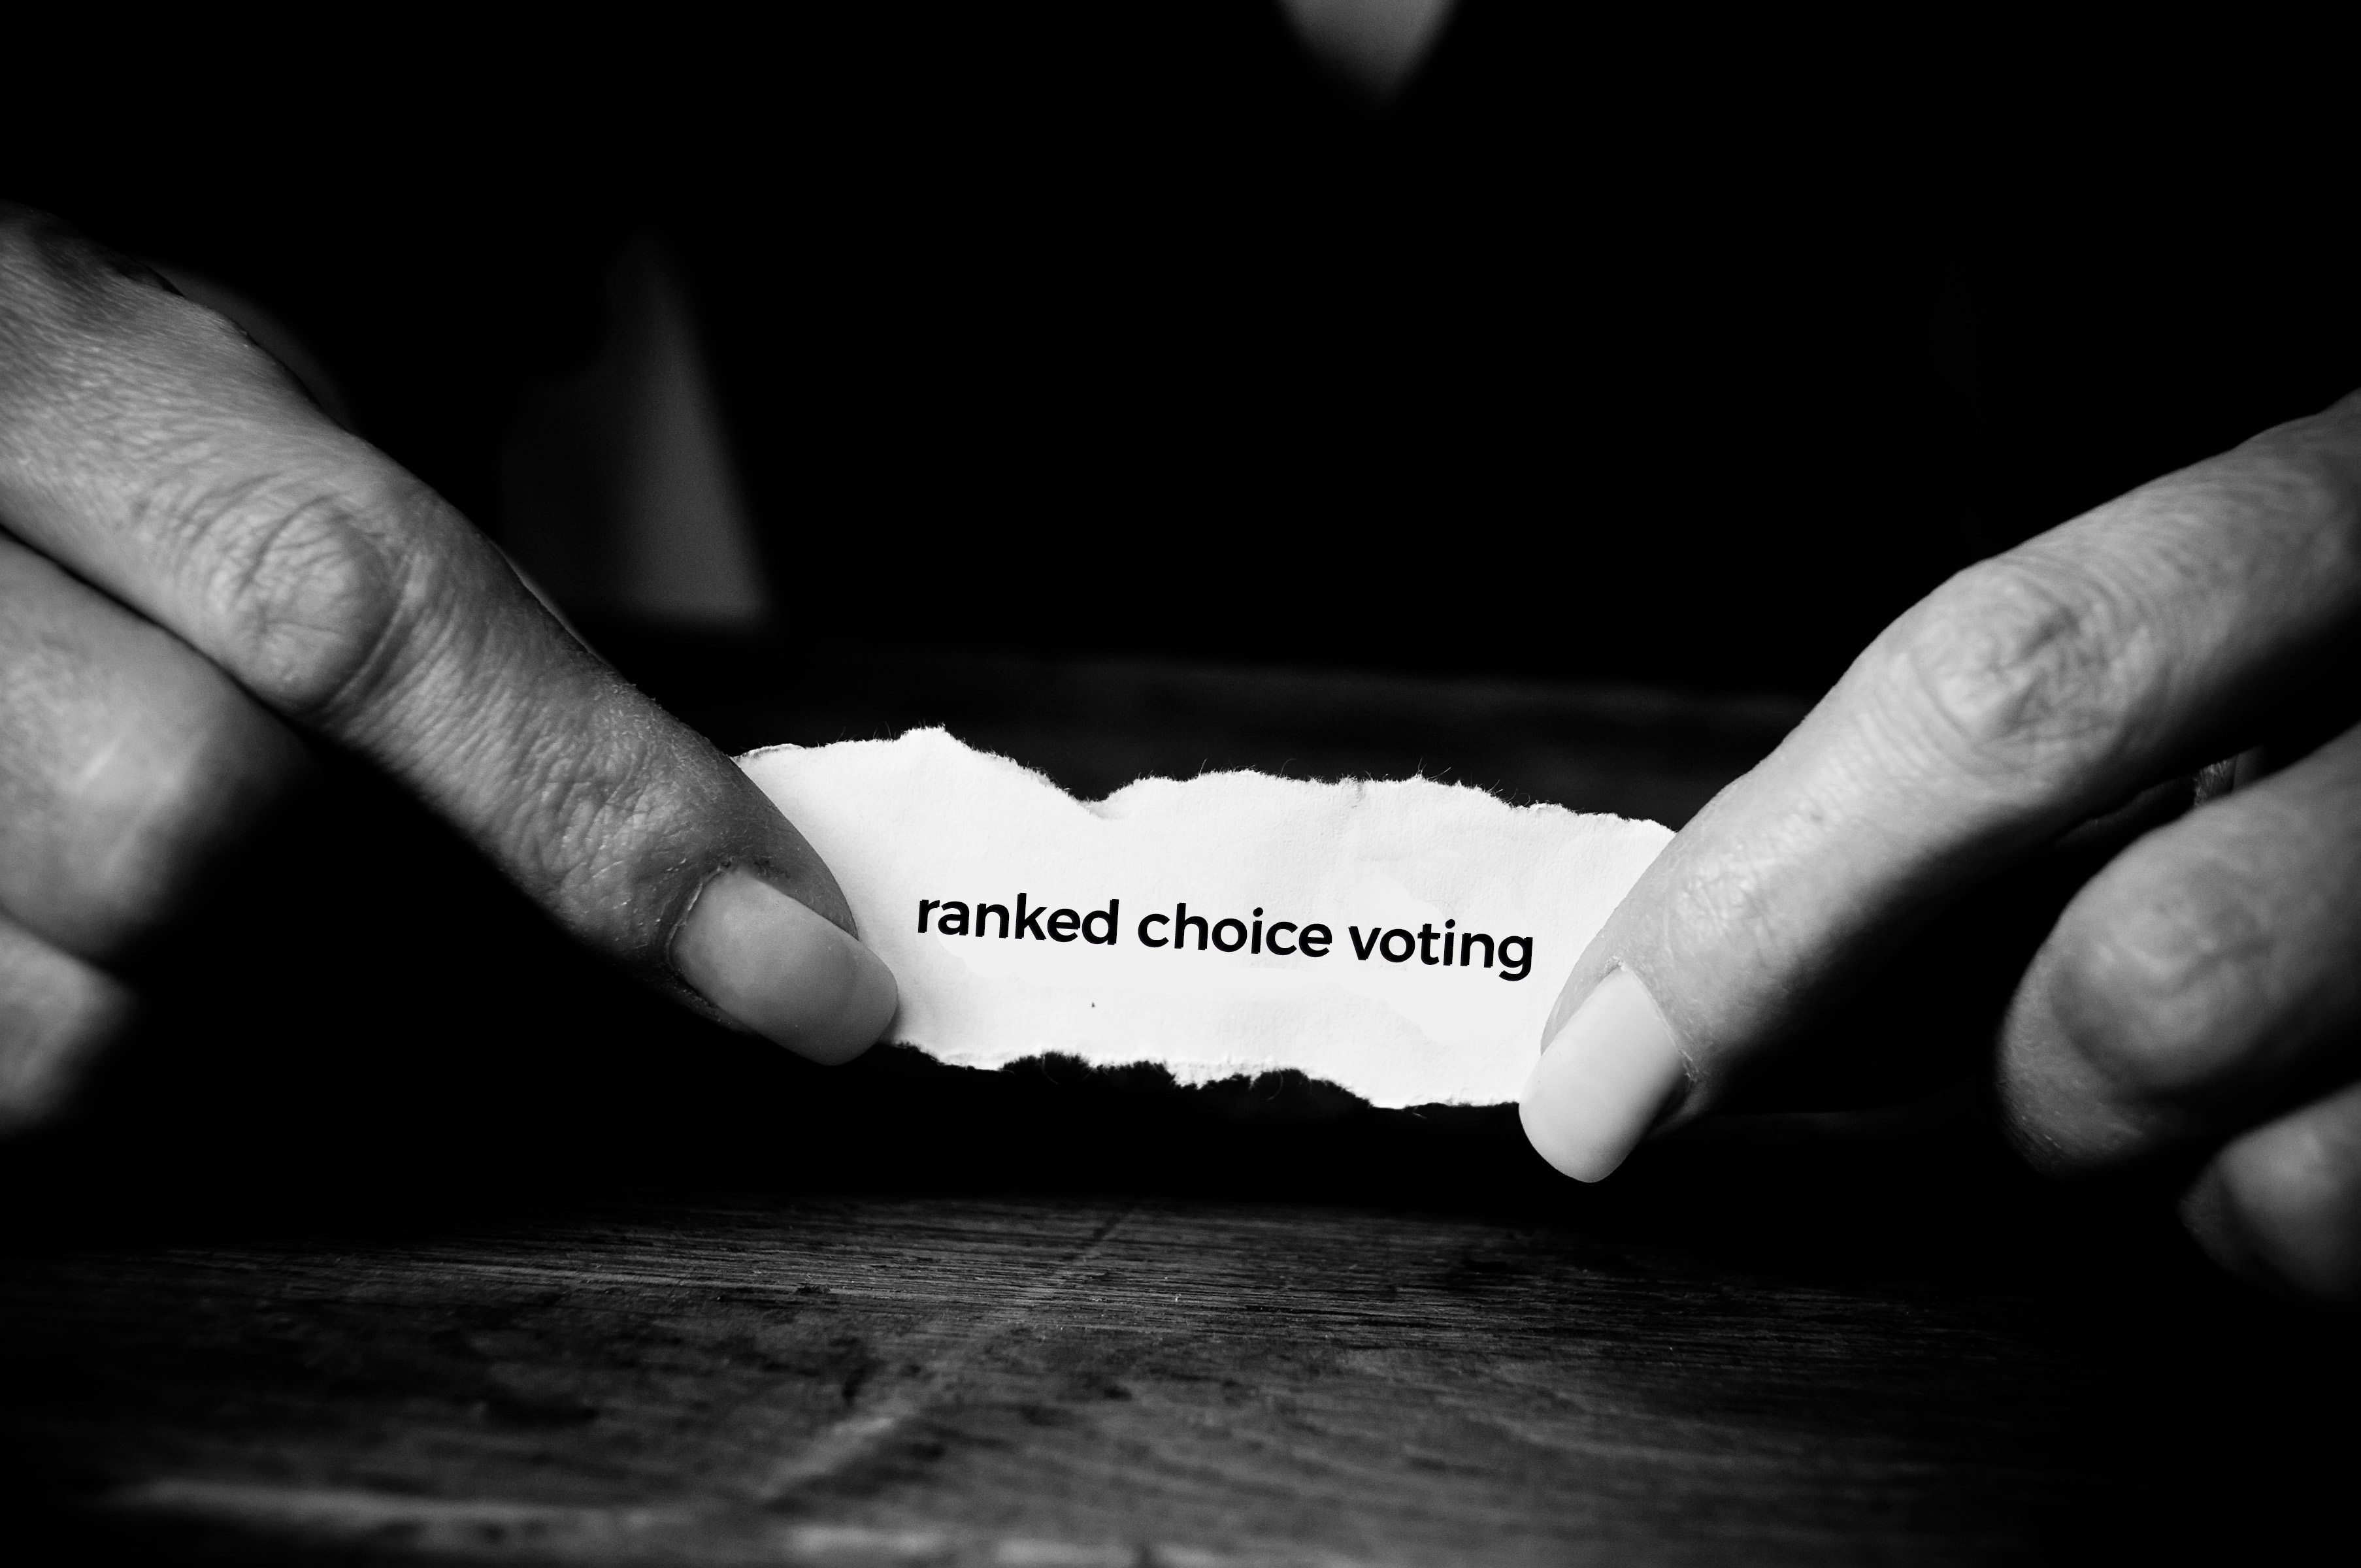 Ranked choice voting's midterm report